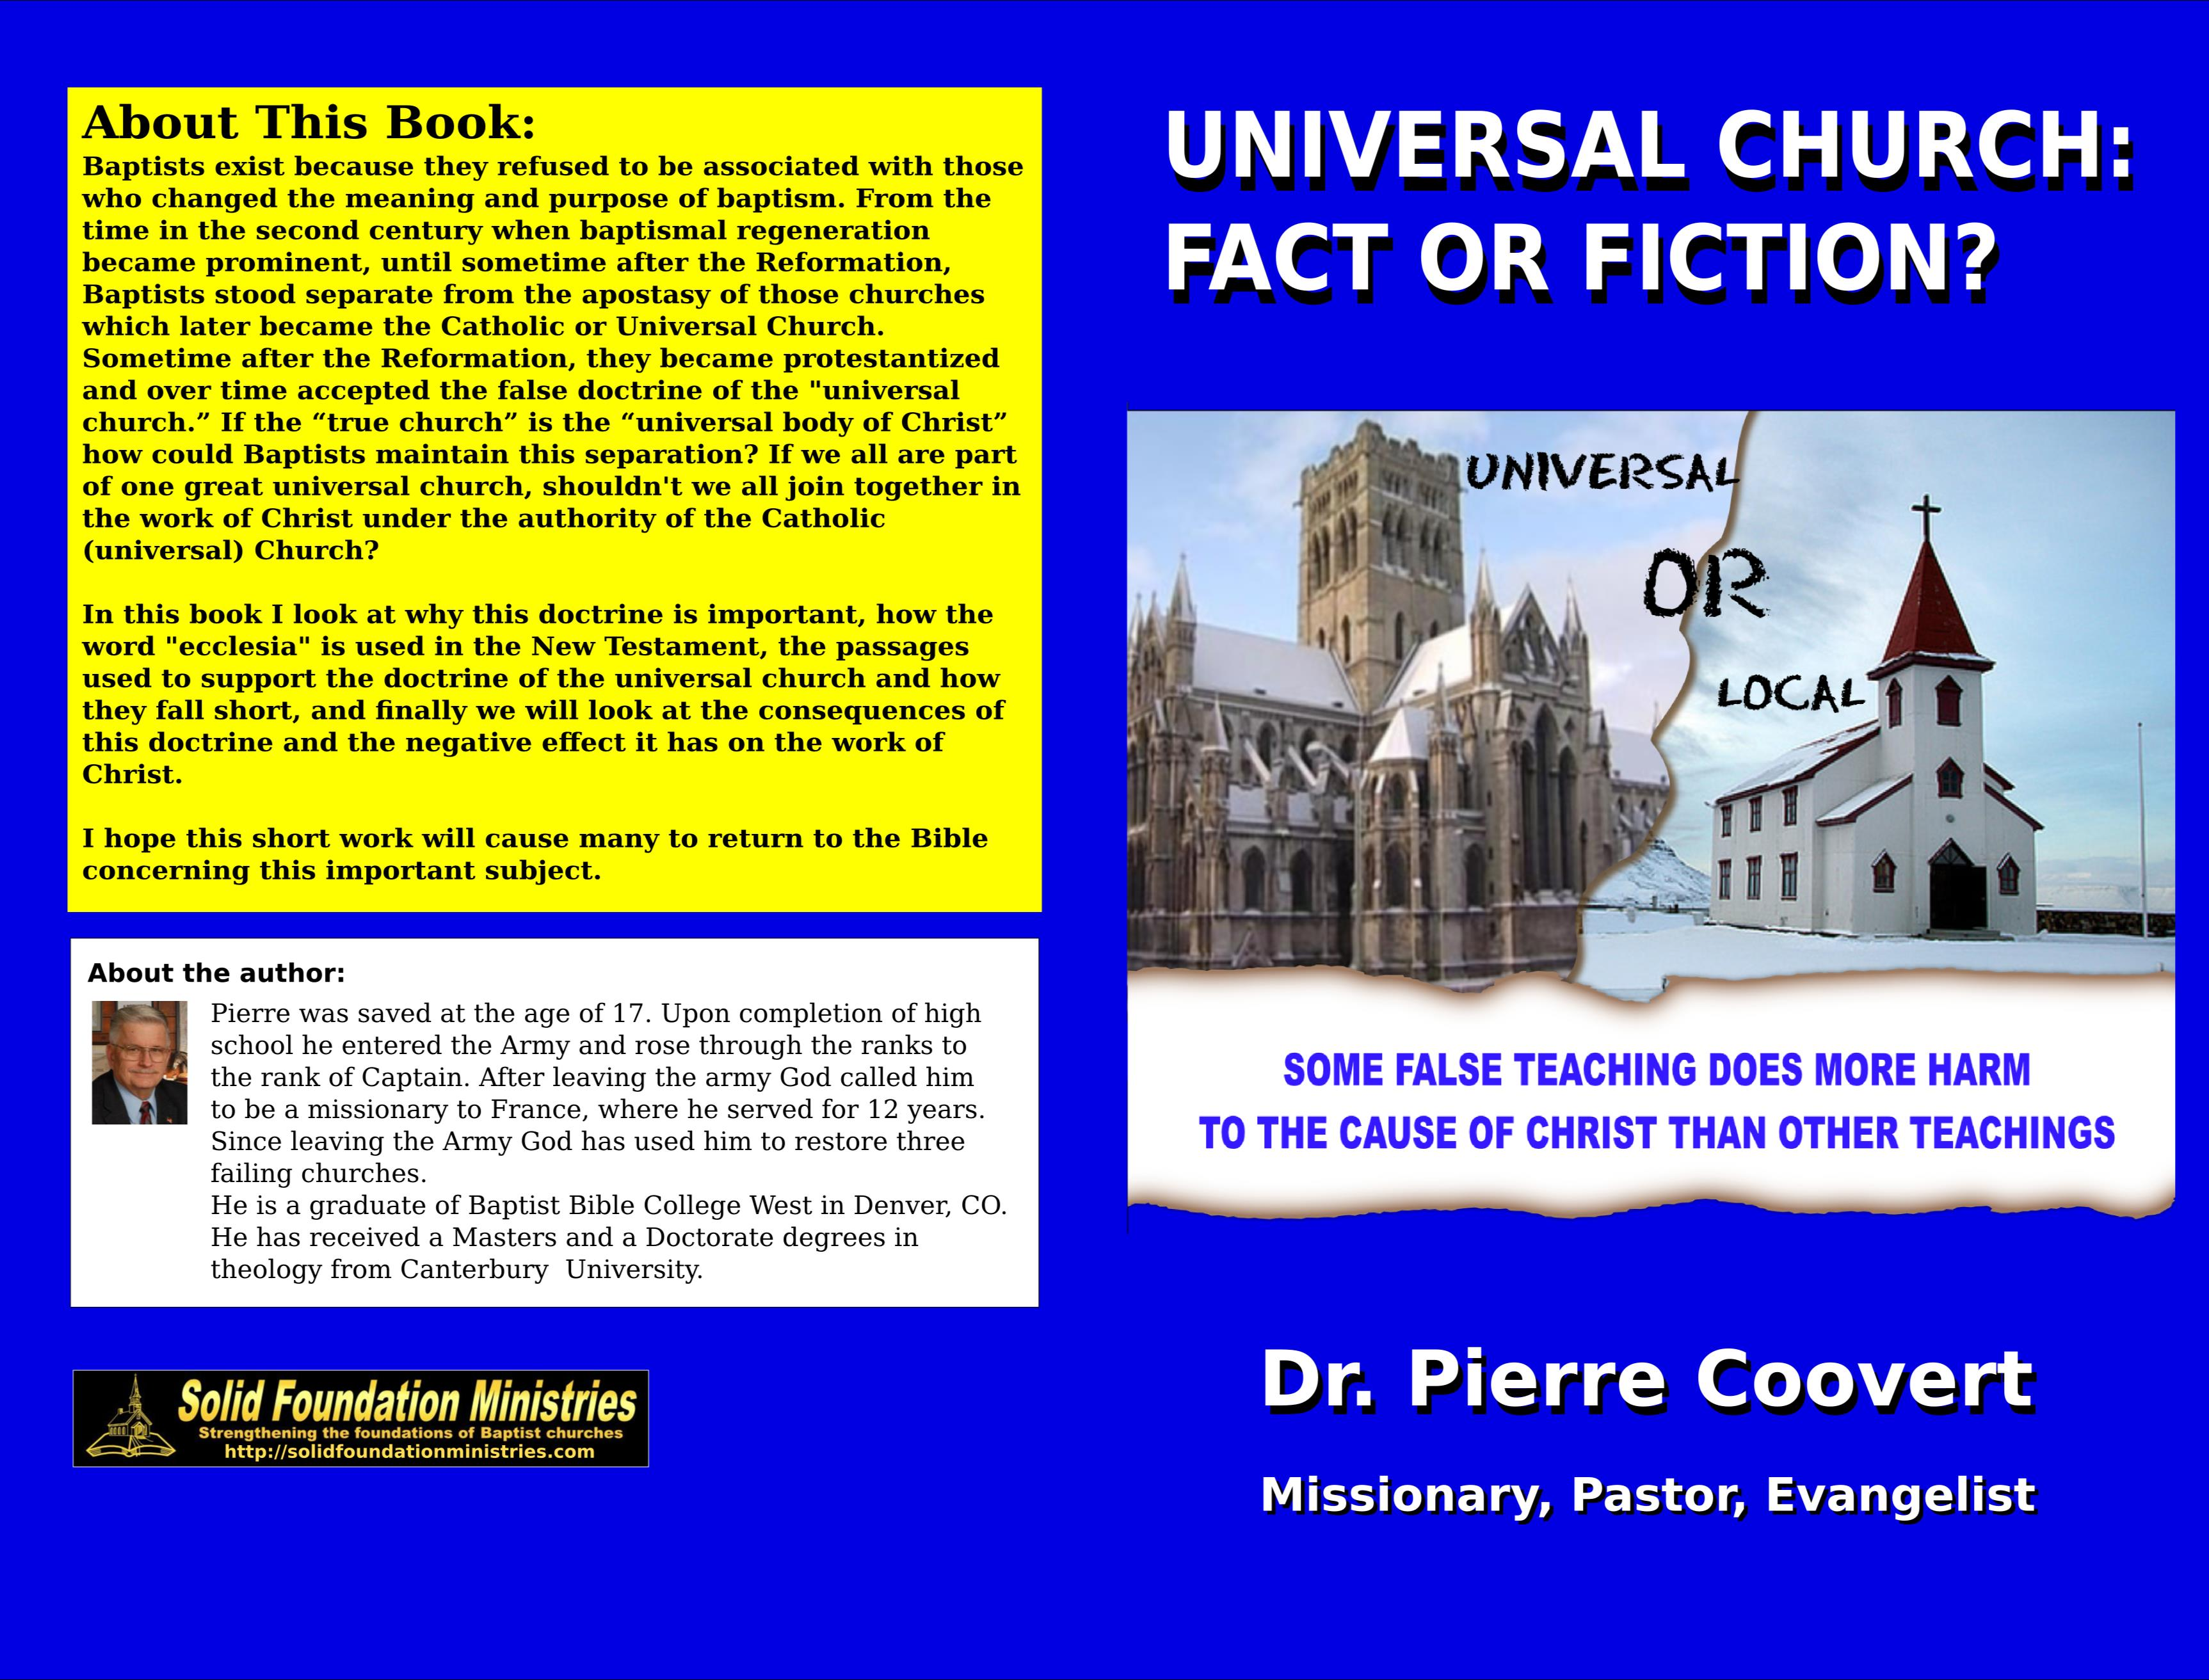 Universal Church: Fact or Fiction cover image